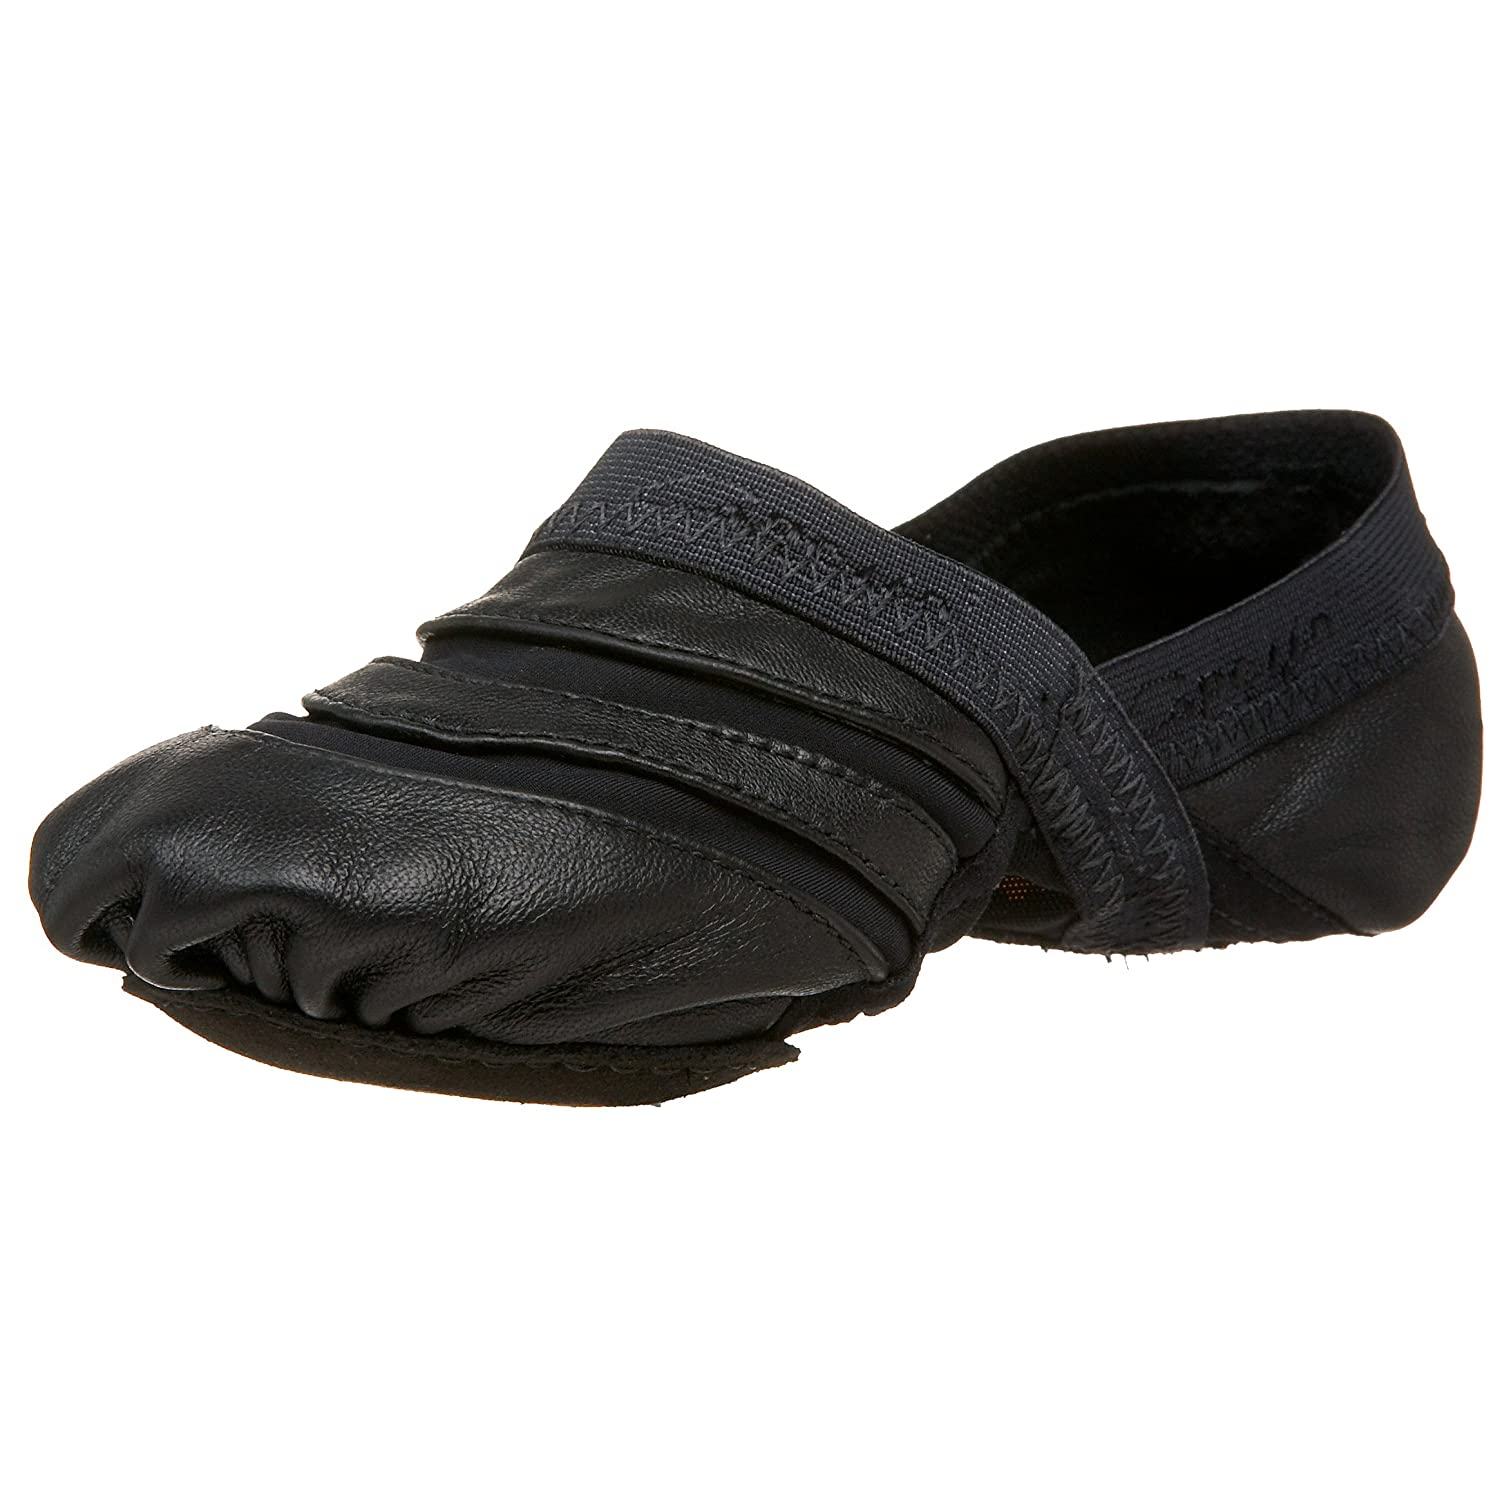 Capezio Women's FF01 Freeform Ballet Shoe B001ECZAV2 9.5 W US|Black